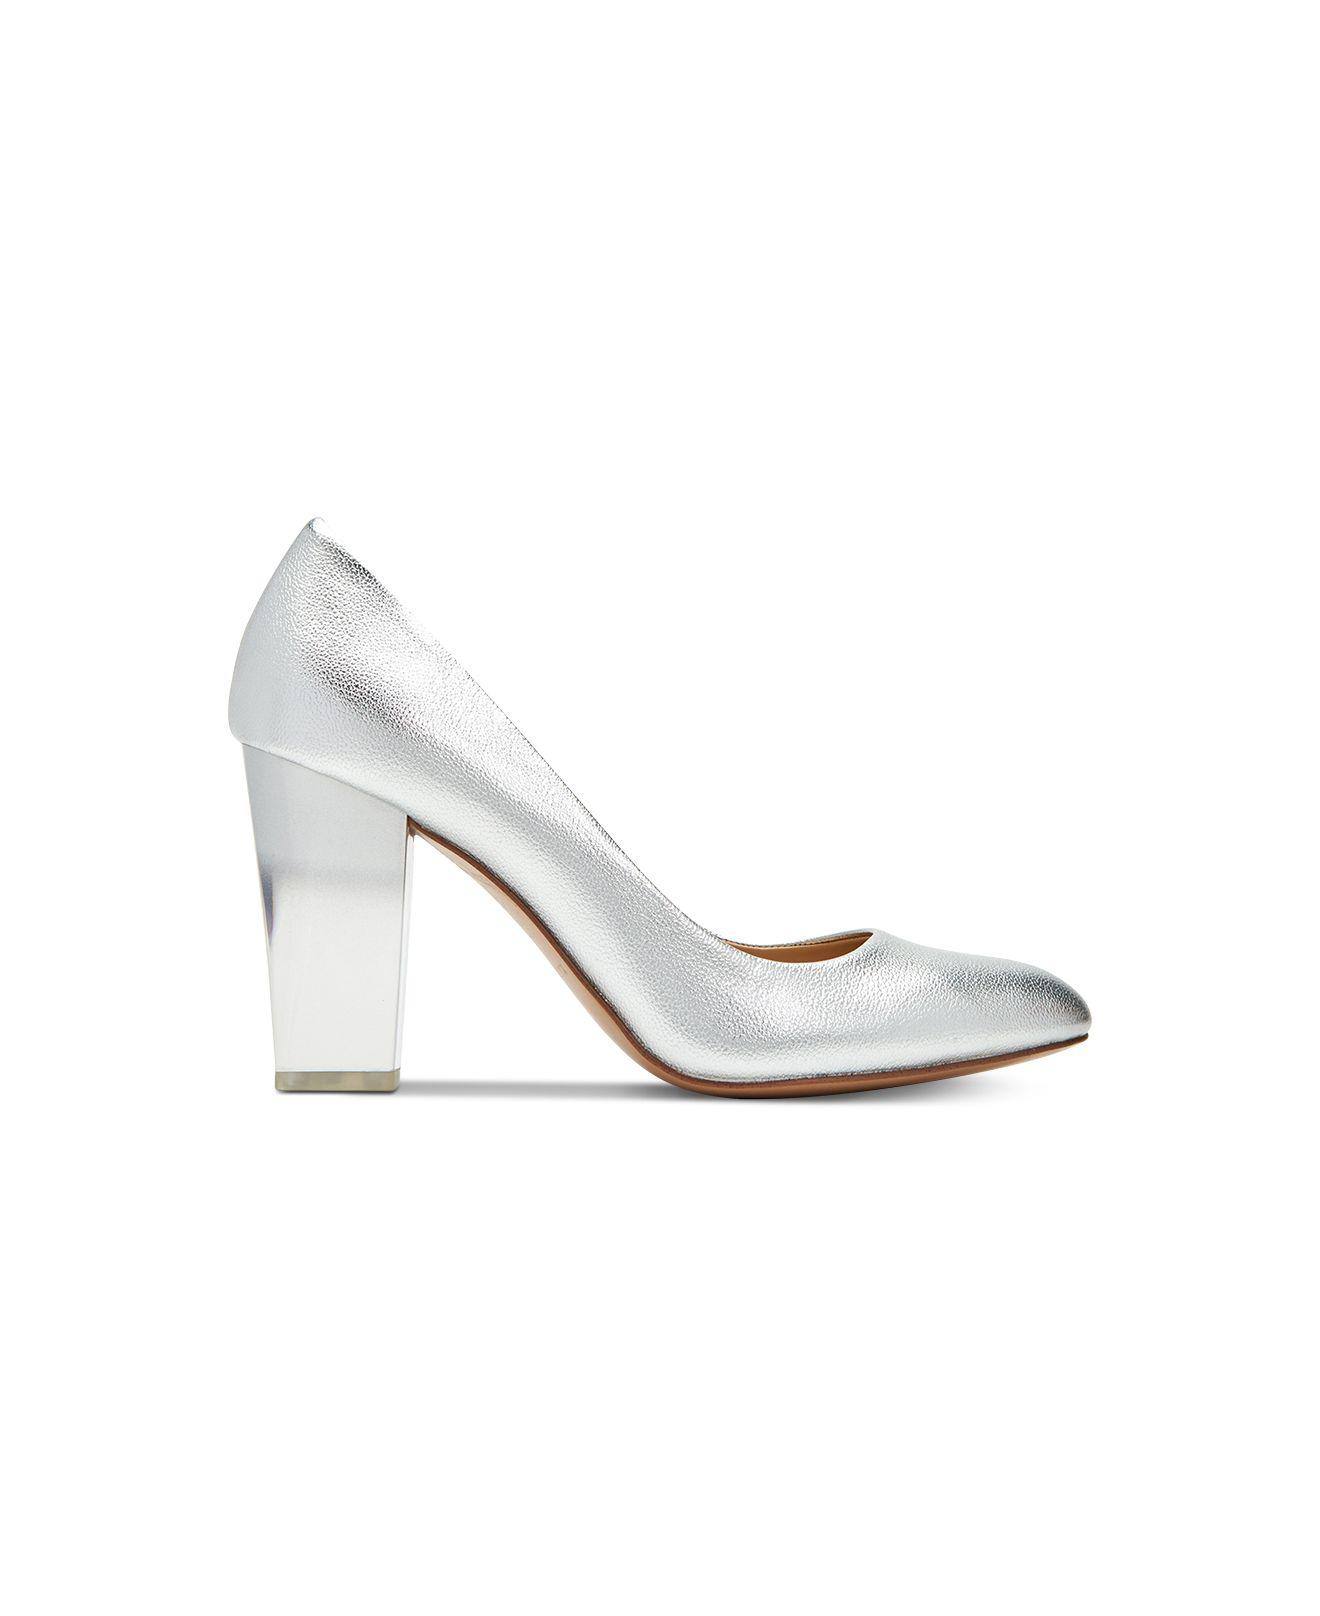 aeedcfe87af Lyst - Katy Perry The A.w. Ombré-lucite Pumps in Metallic